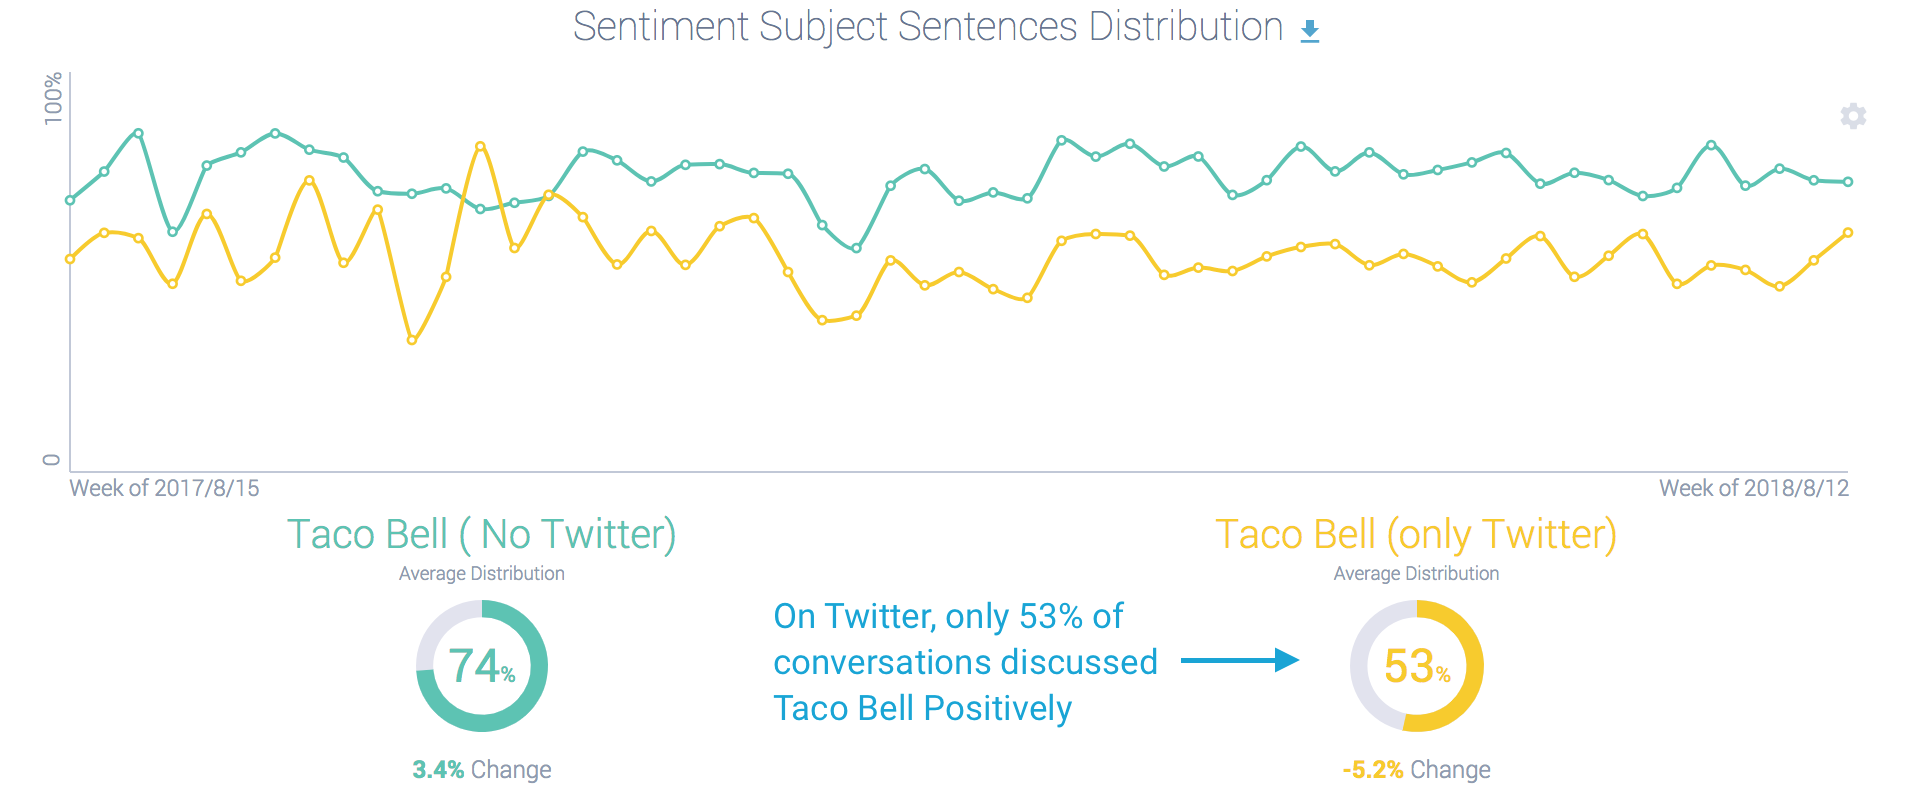 Taco Bell Sentiment NO TWITTER vs. ONLY TWITTER